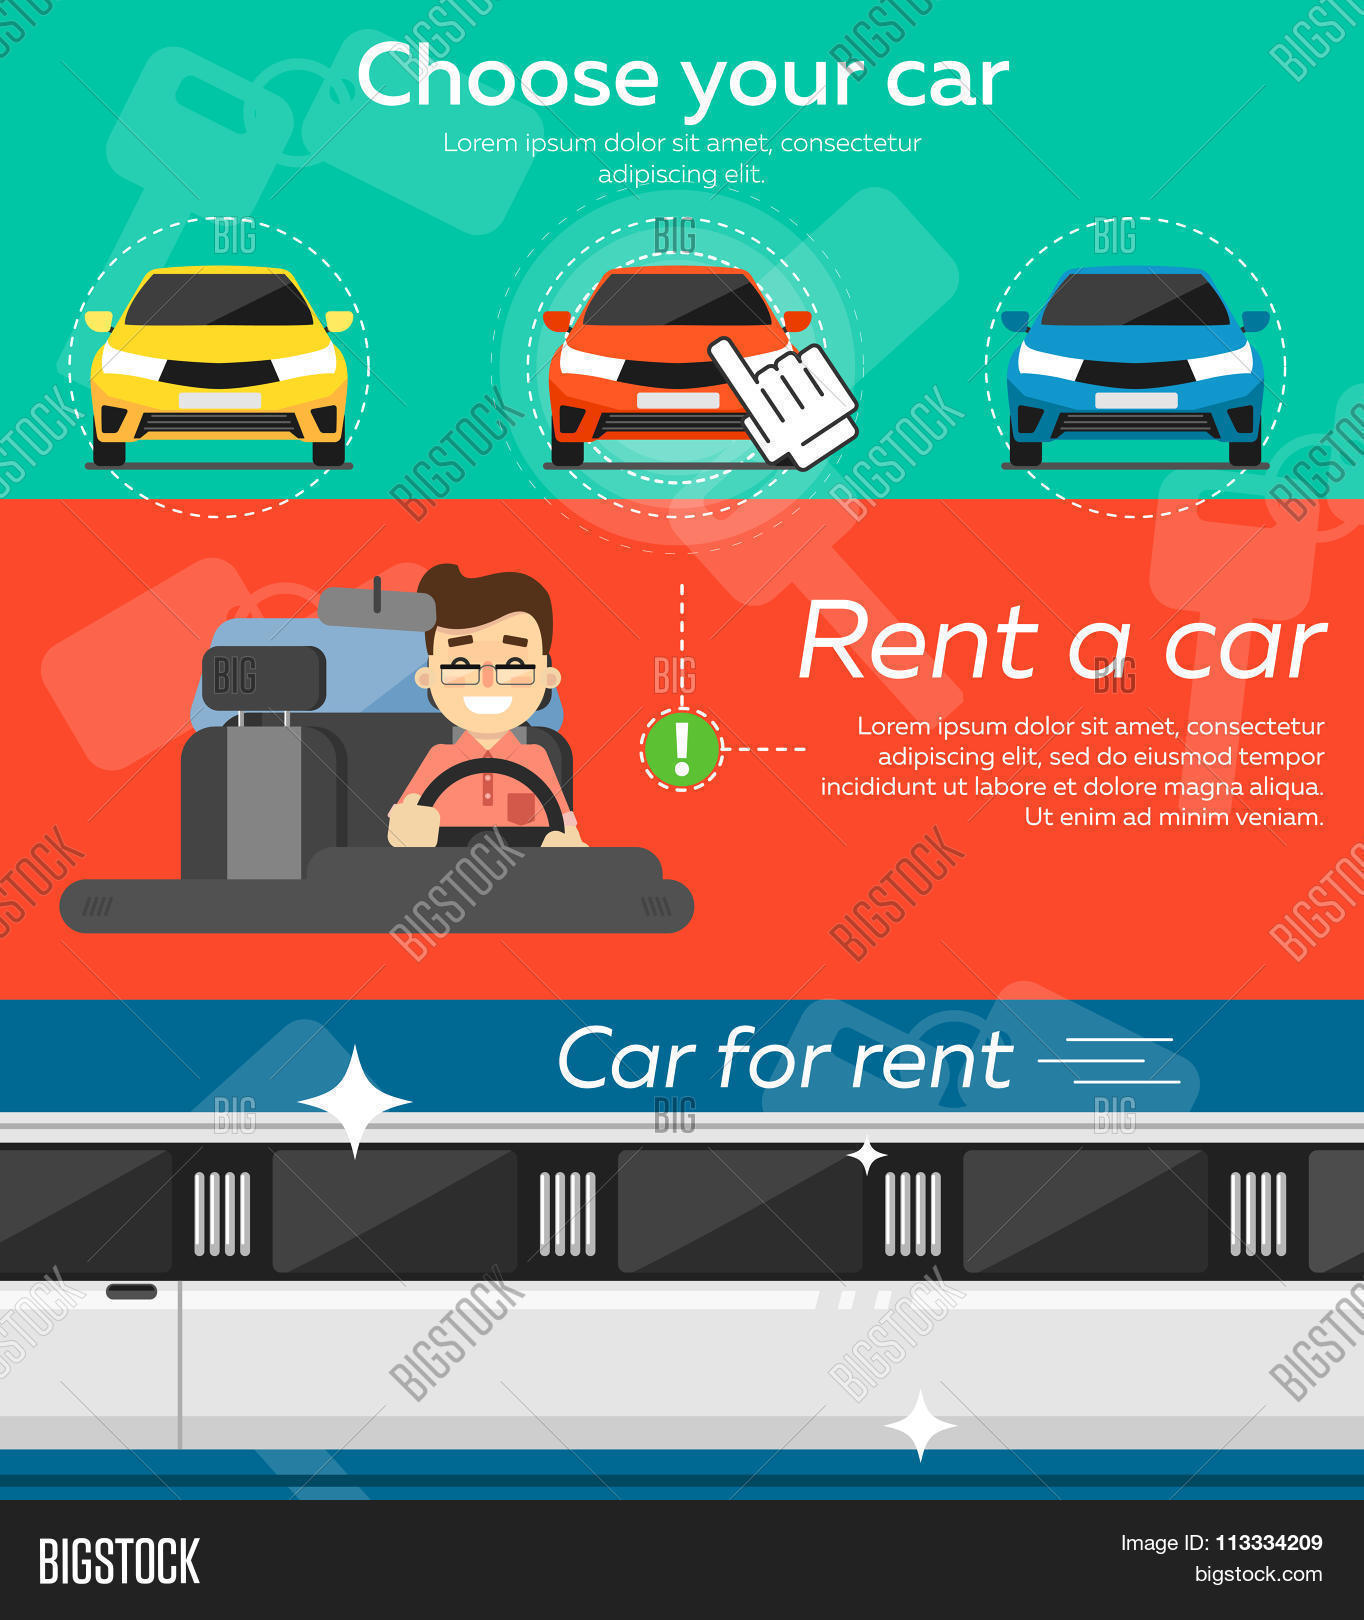 Rent Car Banner Car Rent Banner Vector & Photo  Bigstock. Colleges In California For Fashion Design. Sirius Stock Buy Or Sell Home Security Careers. Las Vegas Justice Court Calendar. Teach High School Online Student Travel Trips. Safety Harbor Senior Living All Star Company. Real Estate Marketing Postcards Samples. Insurance Fraud Lawyers Crestline Coupon Code. Masters In English Education Cheep Car Ins